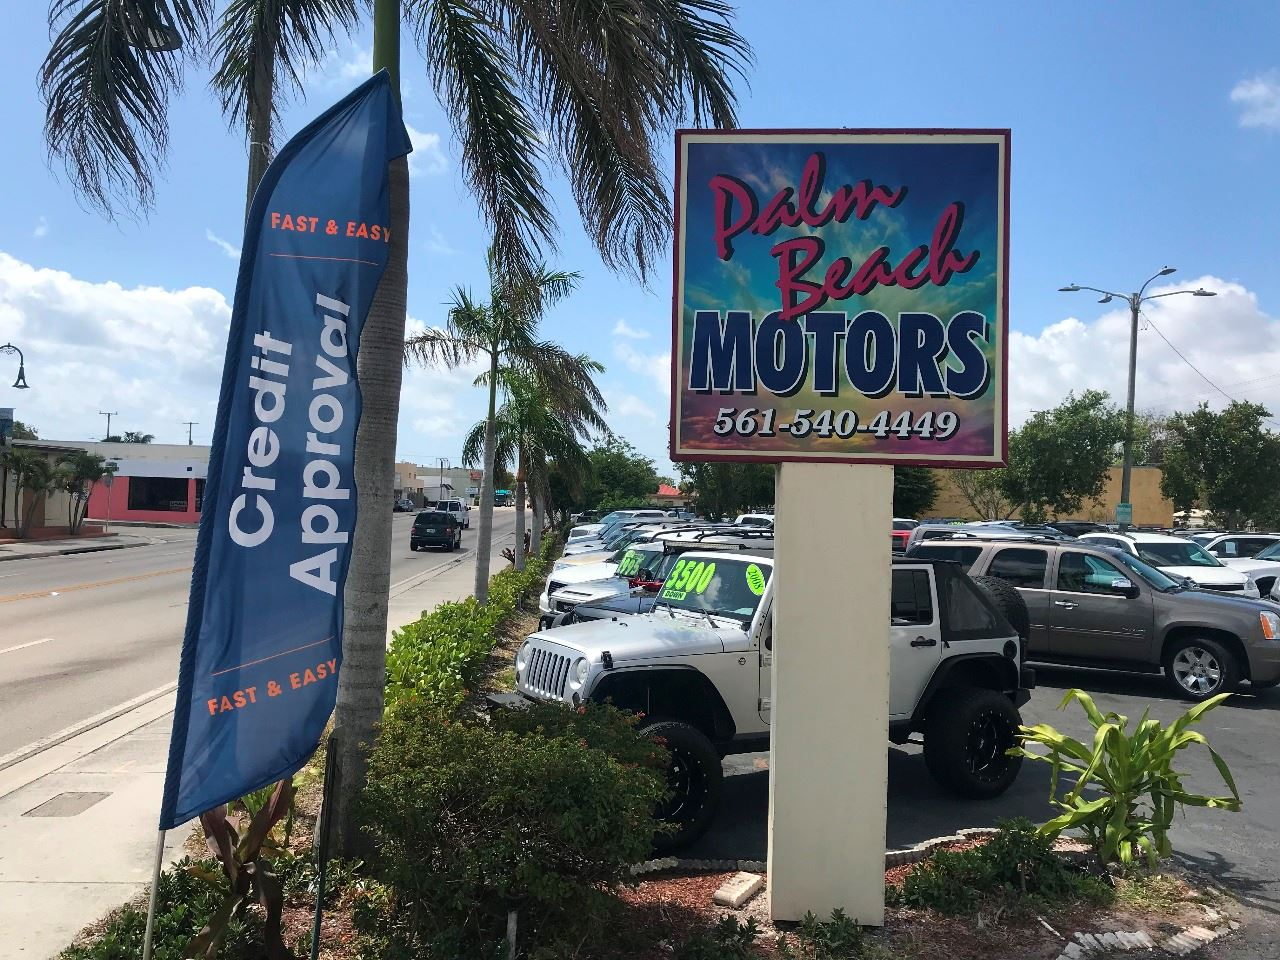 Palm Beach Motors